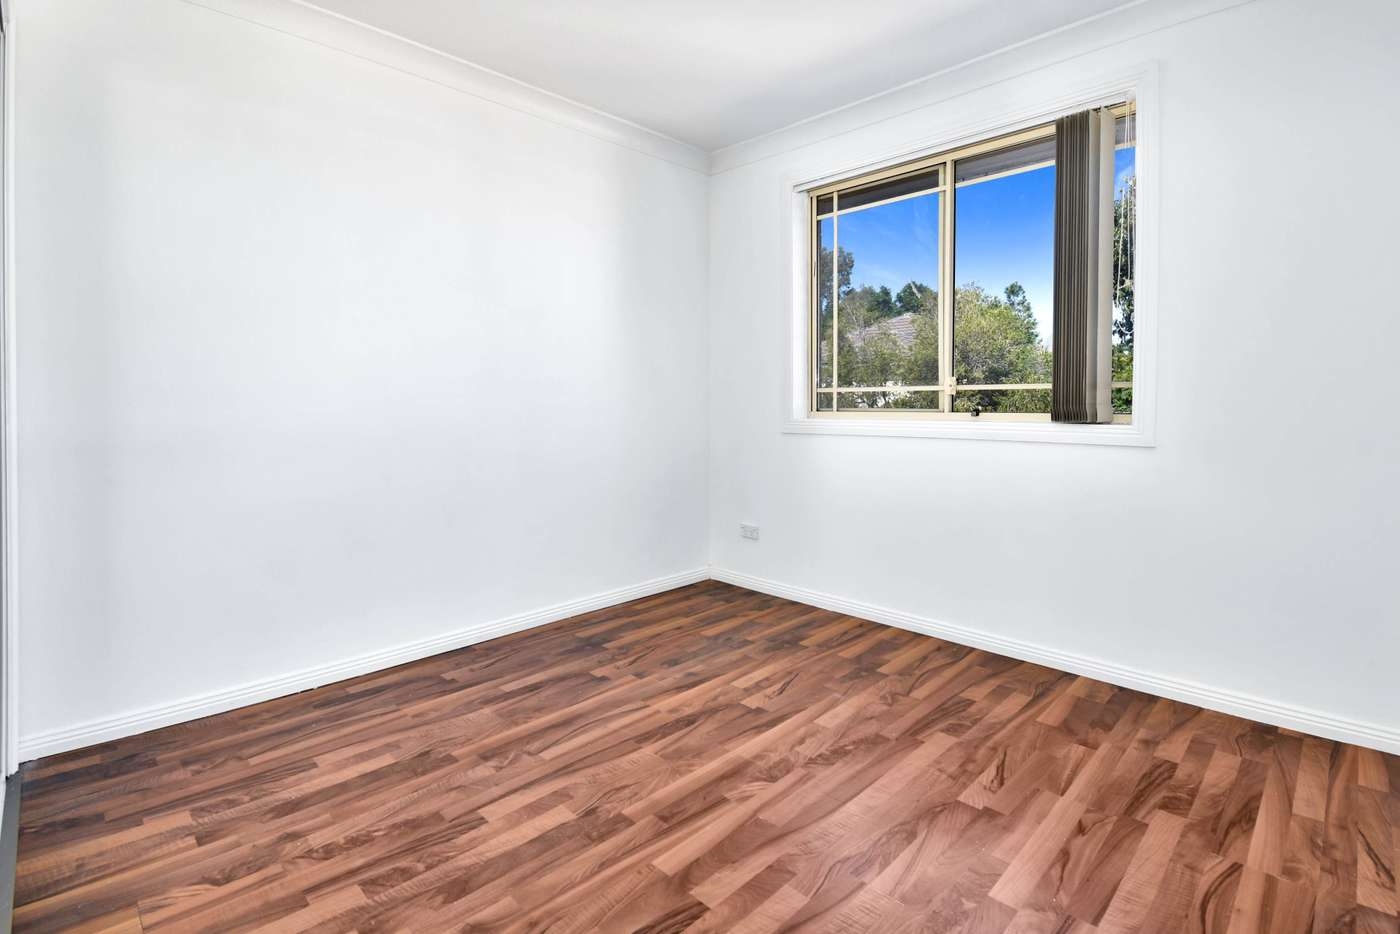 Sixth view of Homely townhouse listing, 7/7 O'Brien Street, Mount Druitt NSW 2770